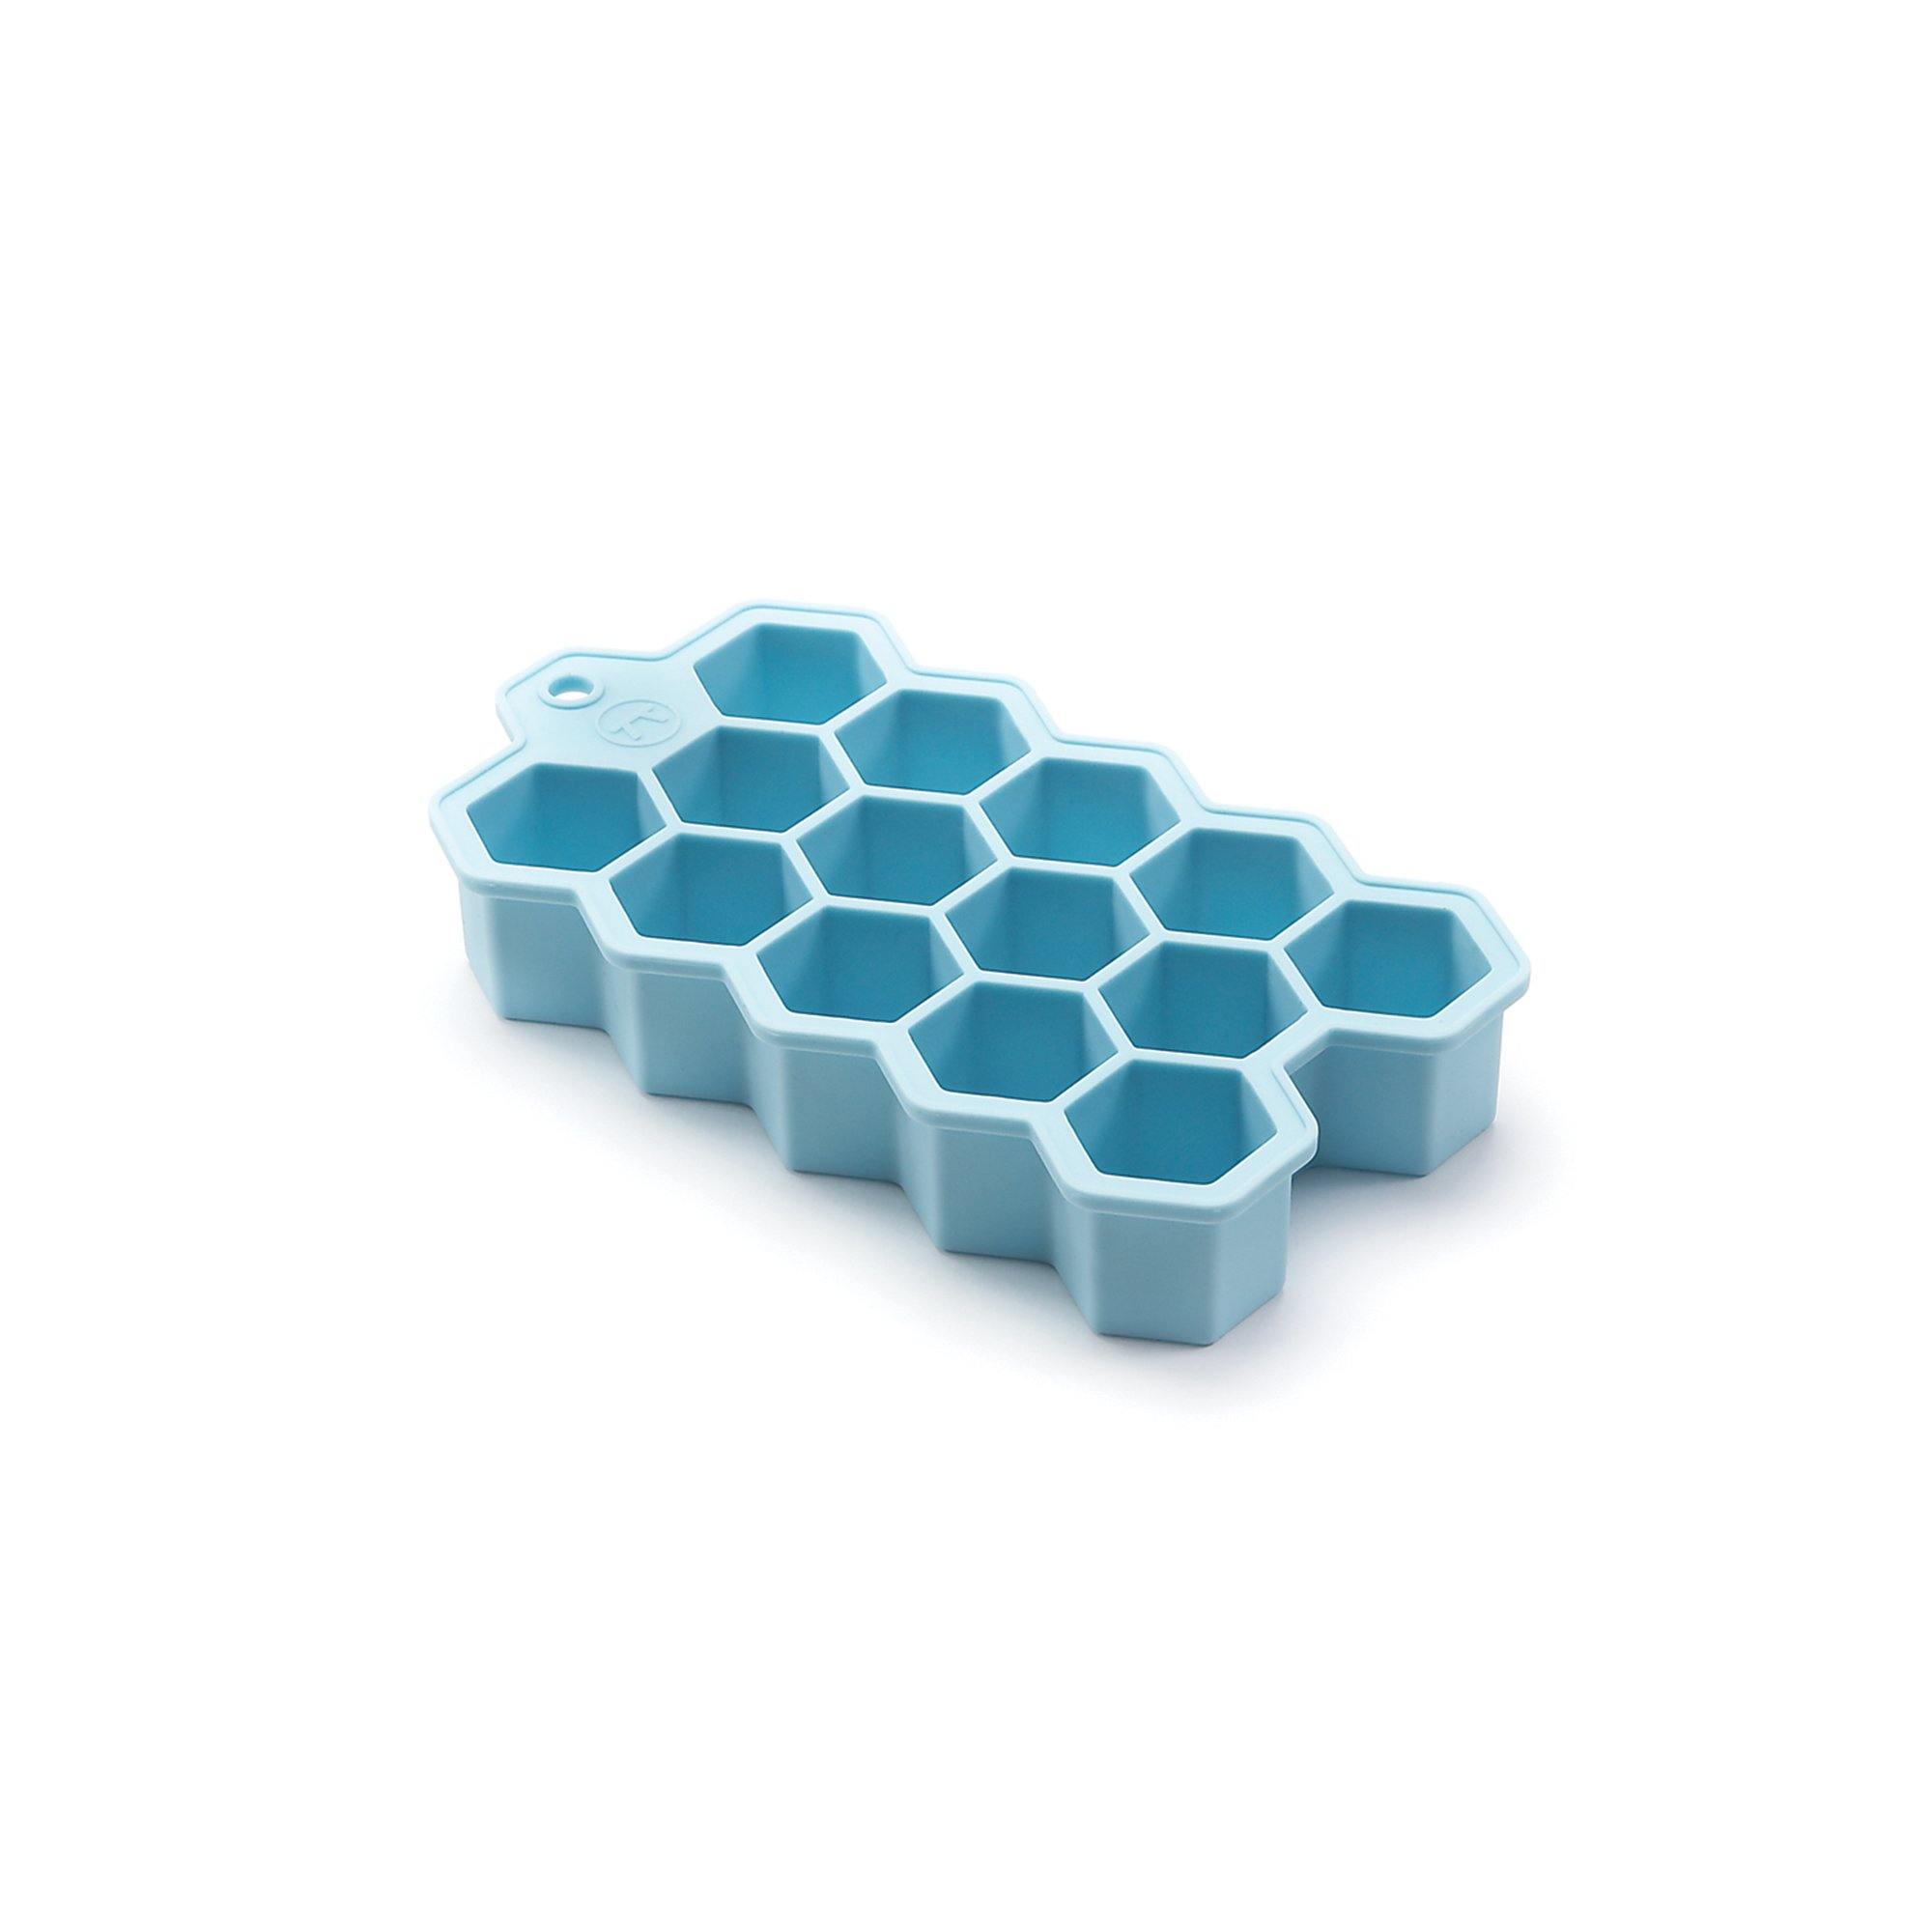 Outset Silicone Hexagon Ice Cube Tray